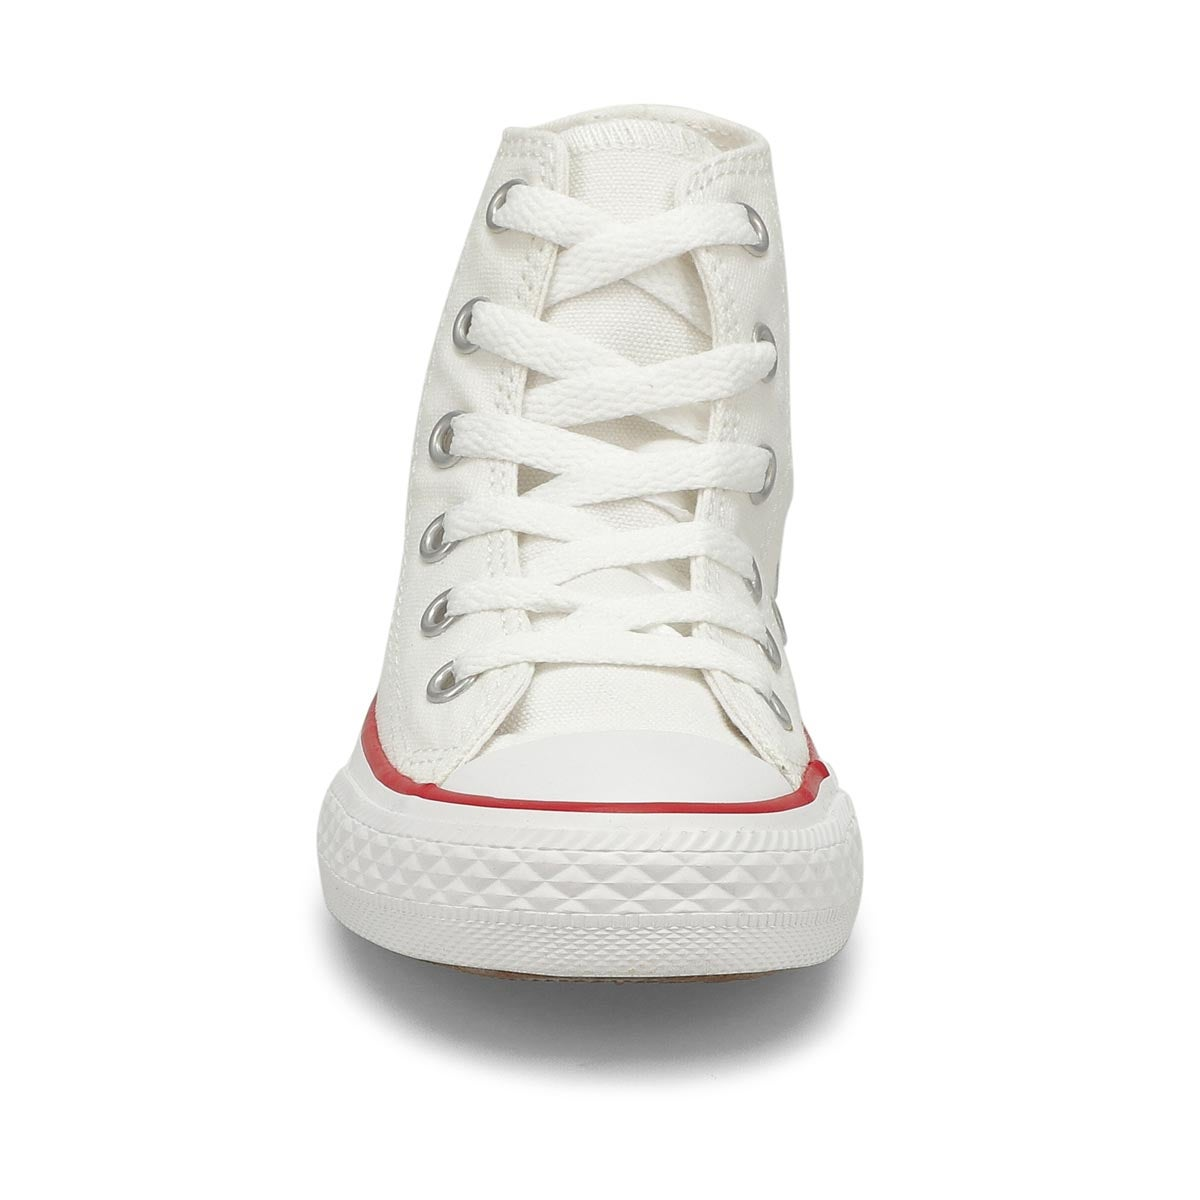 Kds CTAS Core white high top sneaker